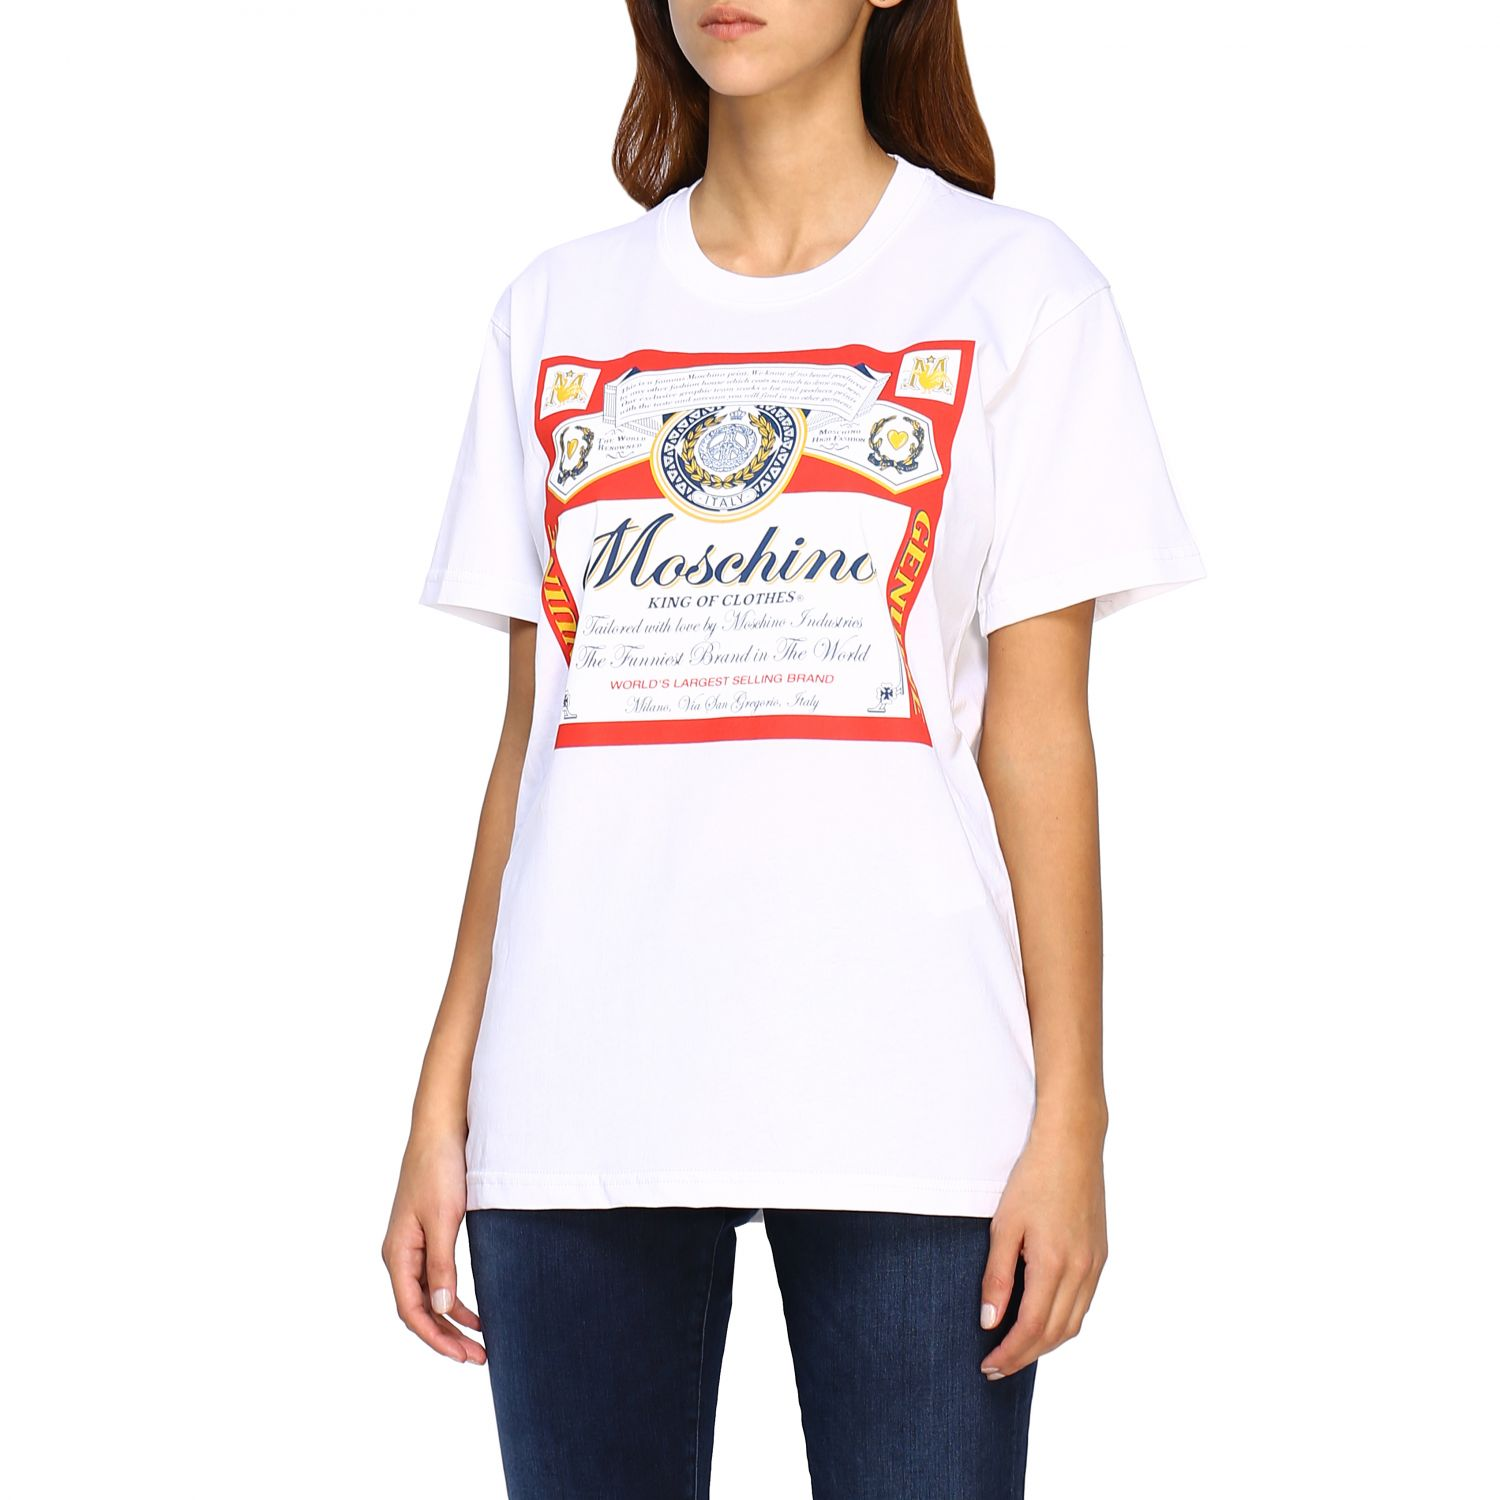 T-shirt Capsule Collection Moschino X Budweiser in jersey di cotone bianco 4